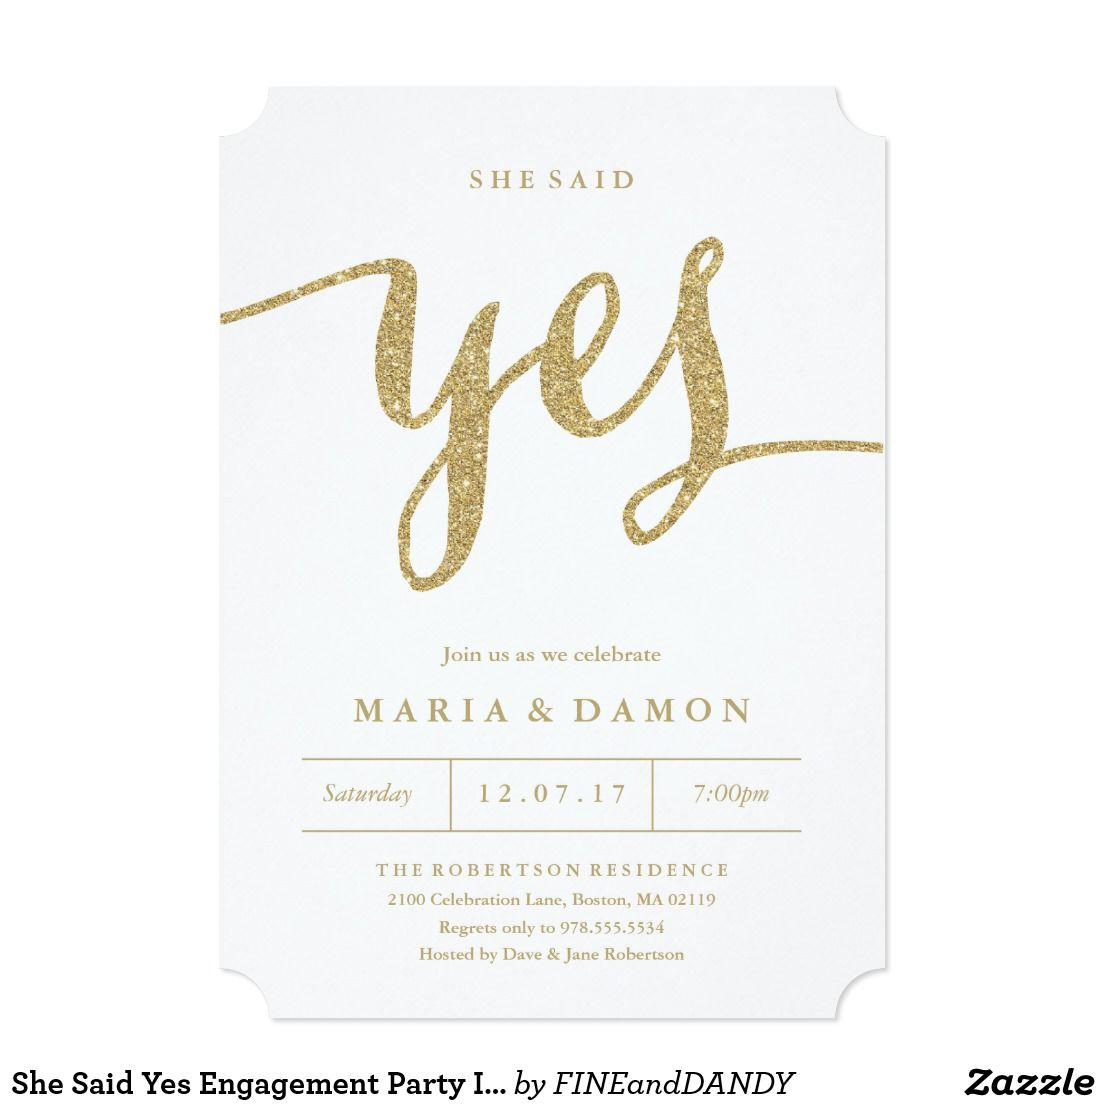 She Said Yes Engagement Party Invitation | Wedding dreams ...